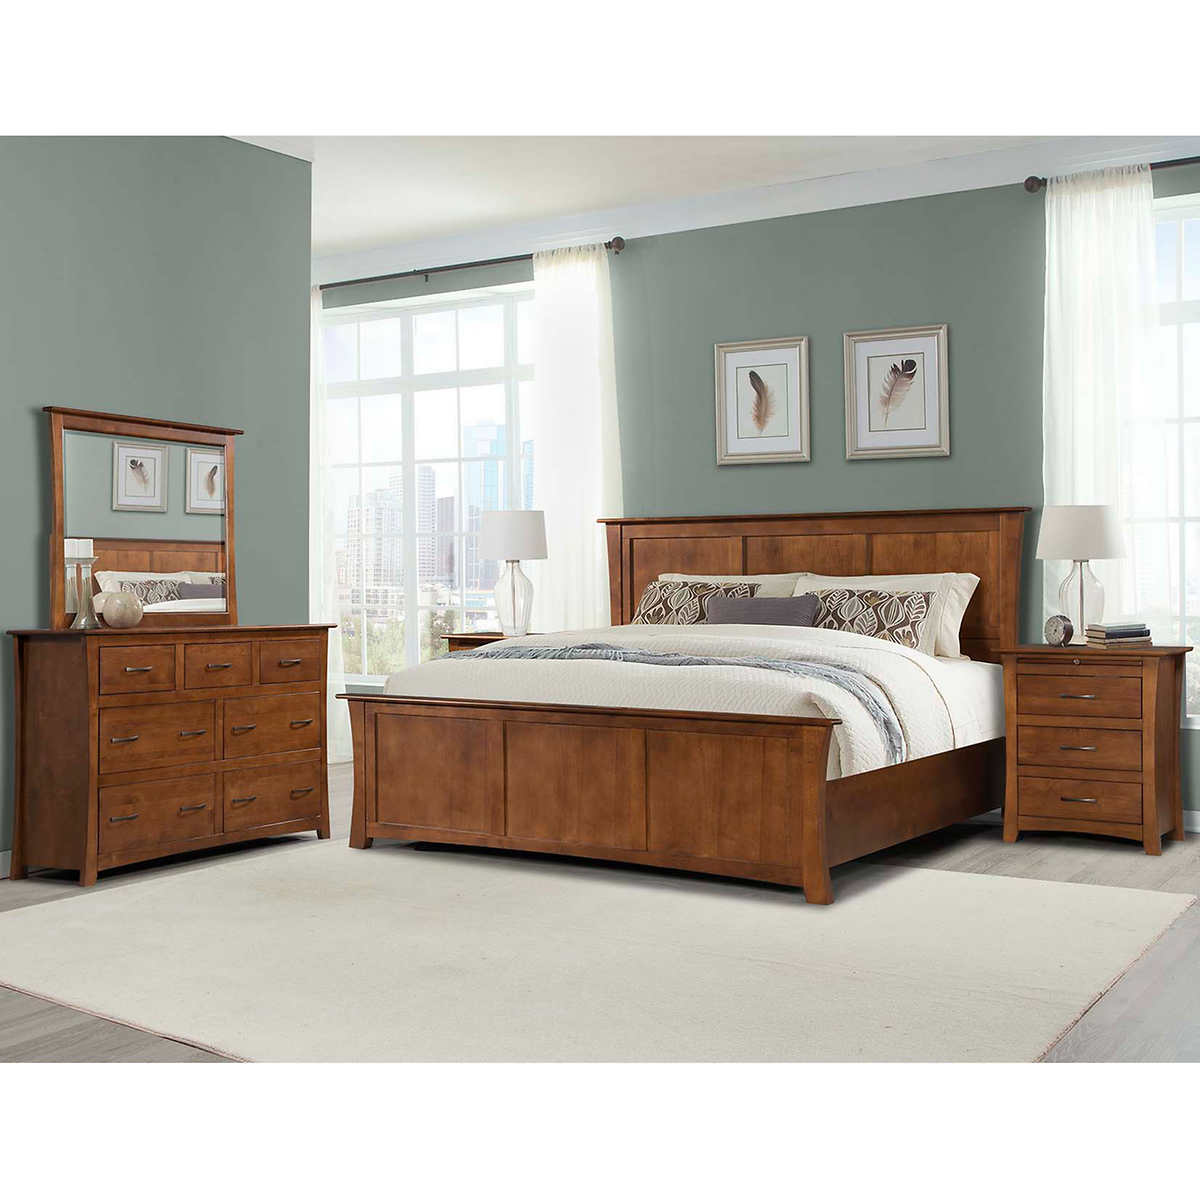 King Bedroom Sets | Costco